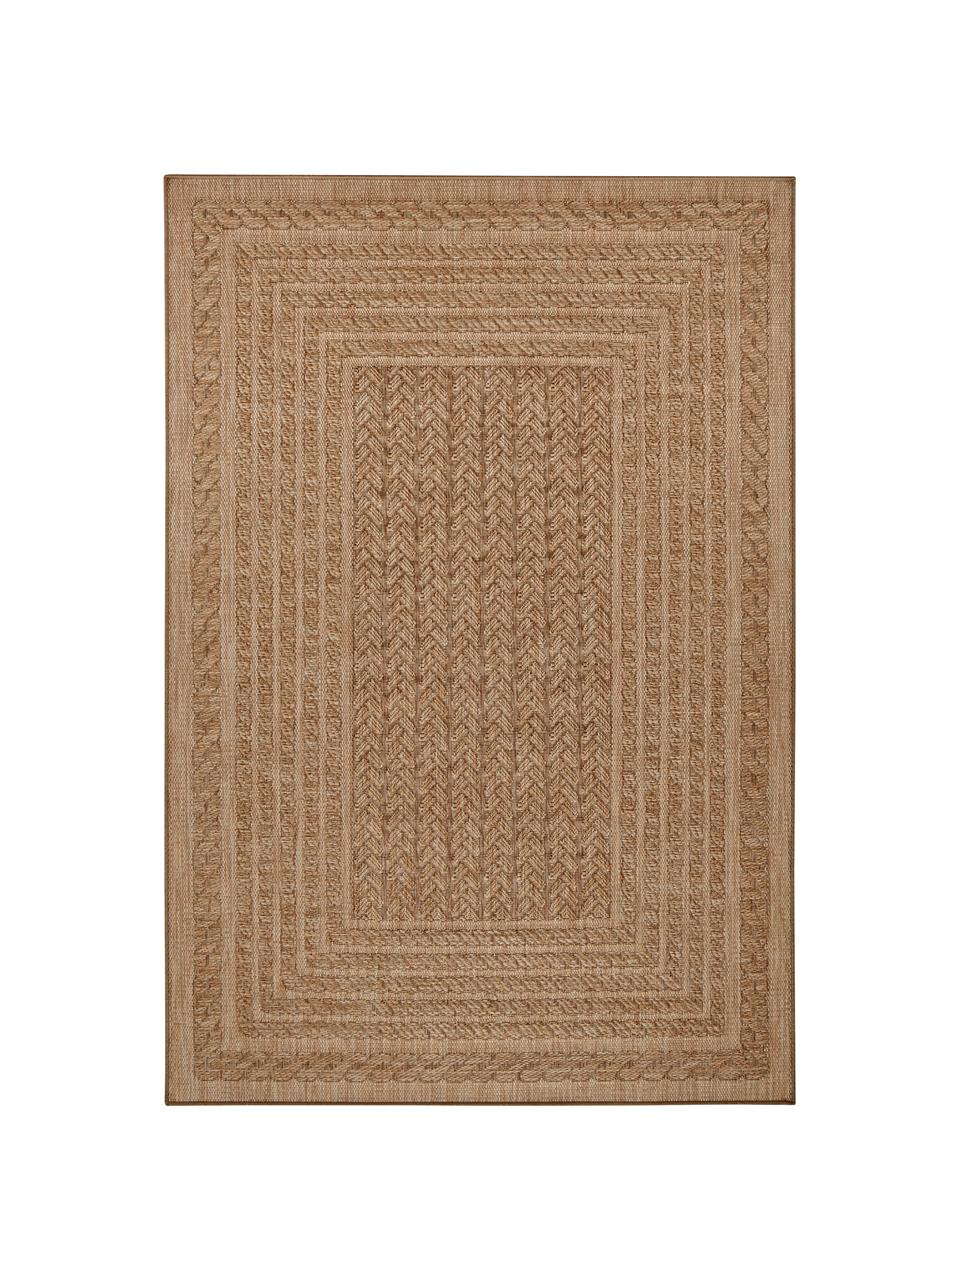 In- & Outdoor-Teppich Limonero in Jute Optik, 100% Polypropylen, Beige, Braun, B 200 x L 290 cm (Größe L)